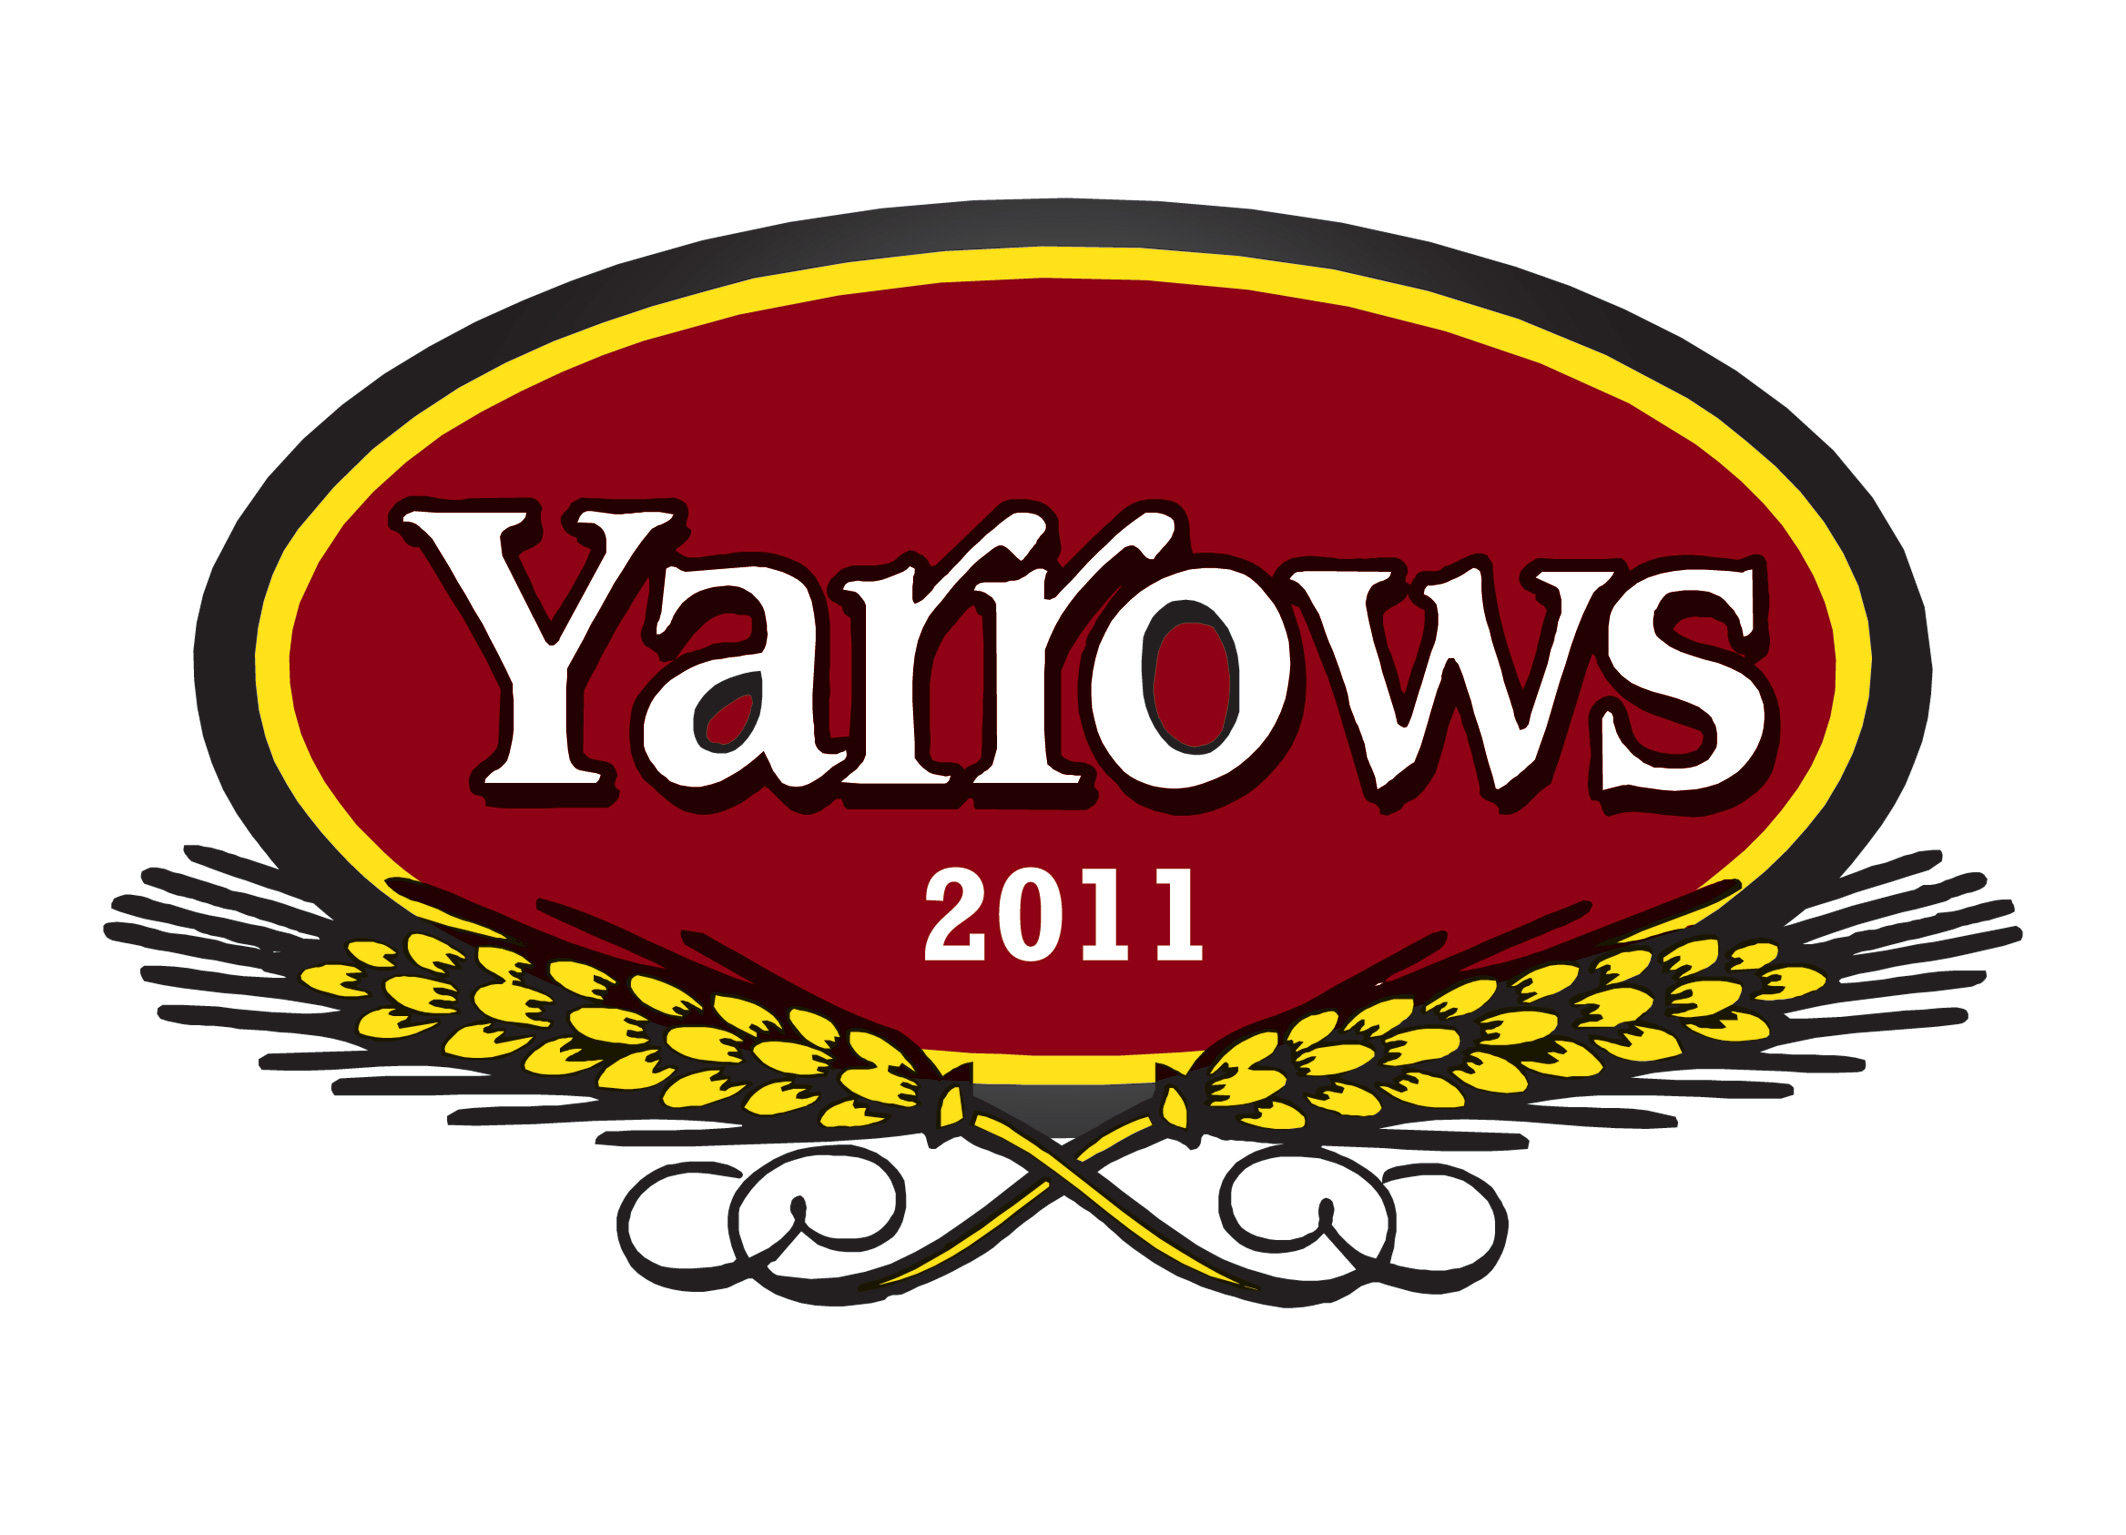 YARROWS (THE BAKERS) 2011 LIMITED